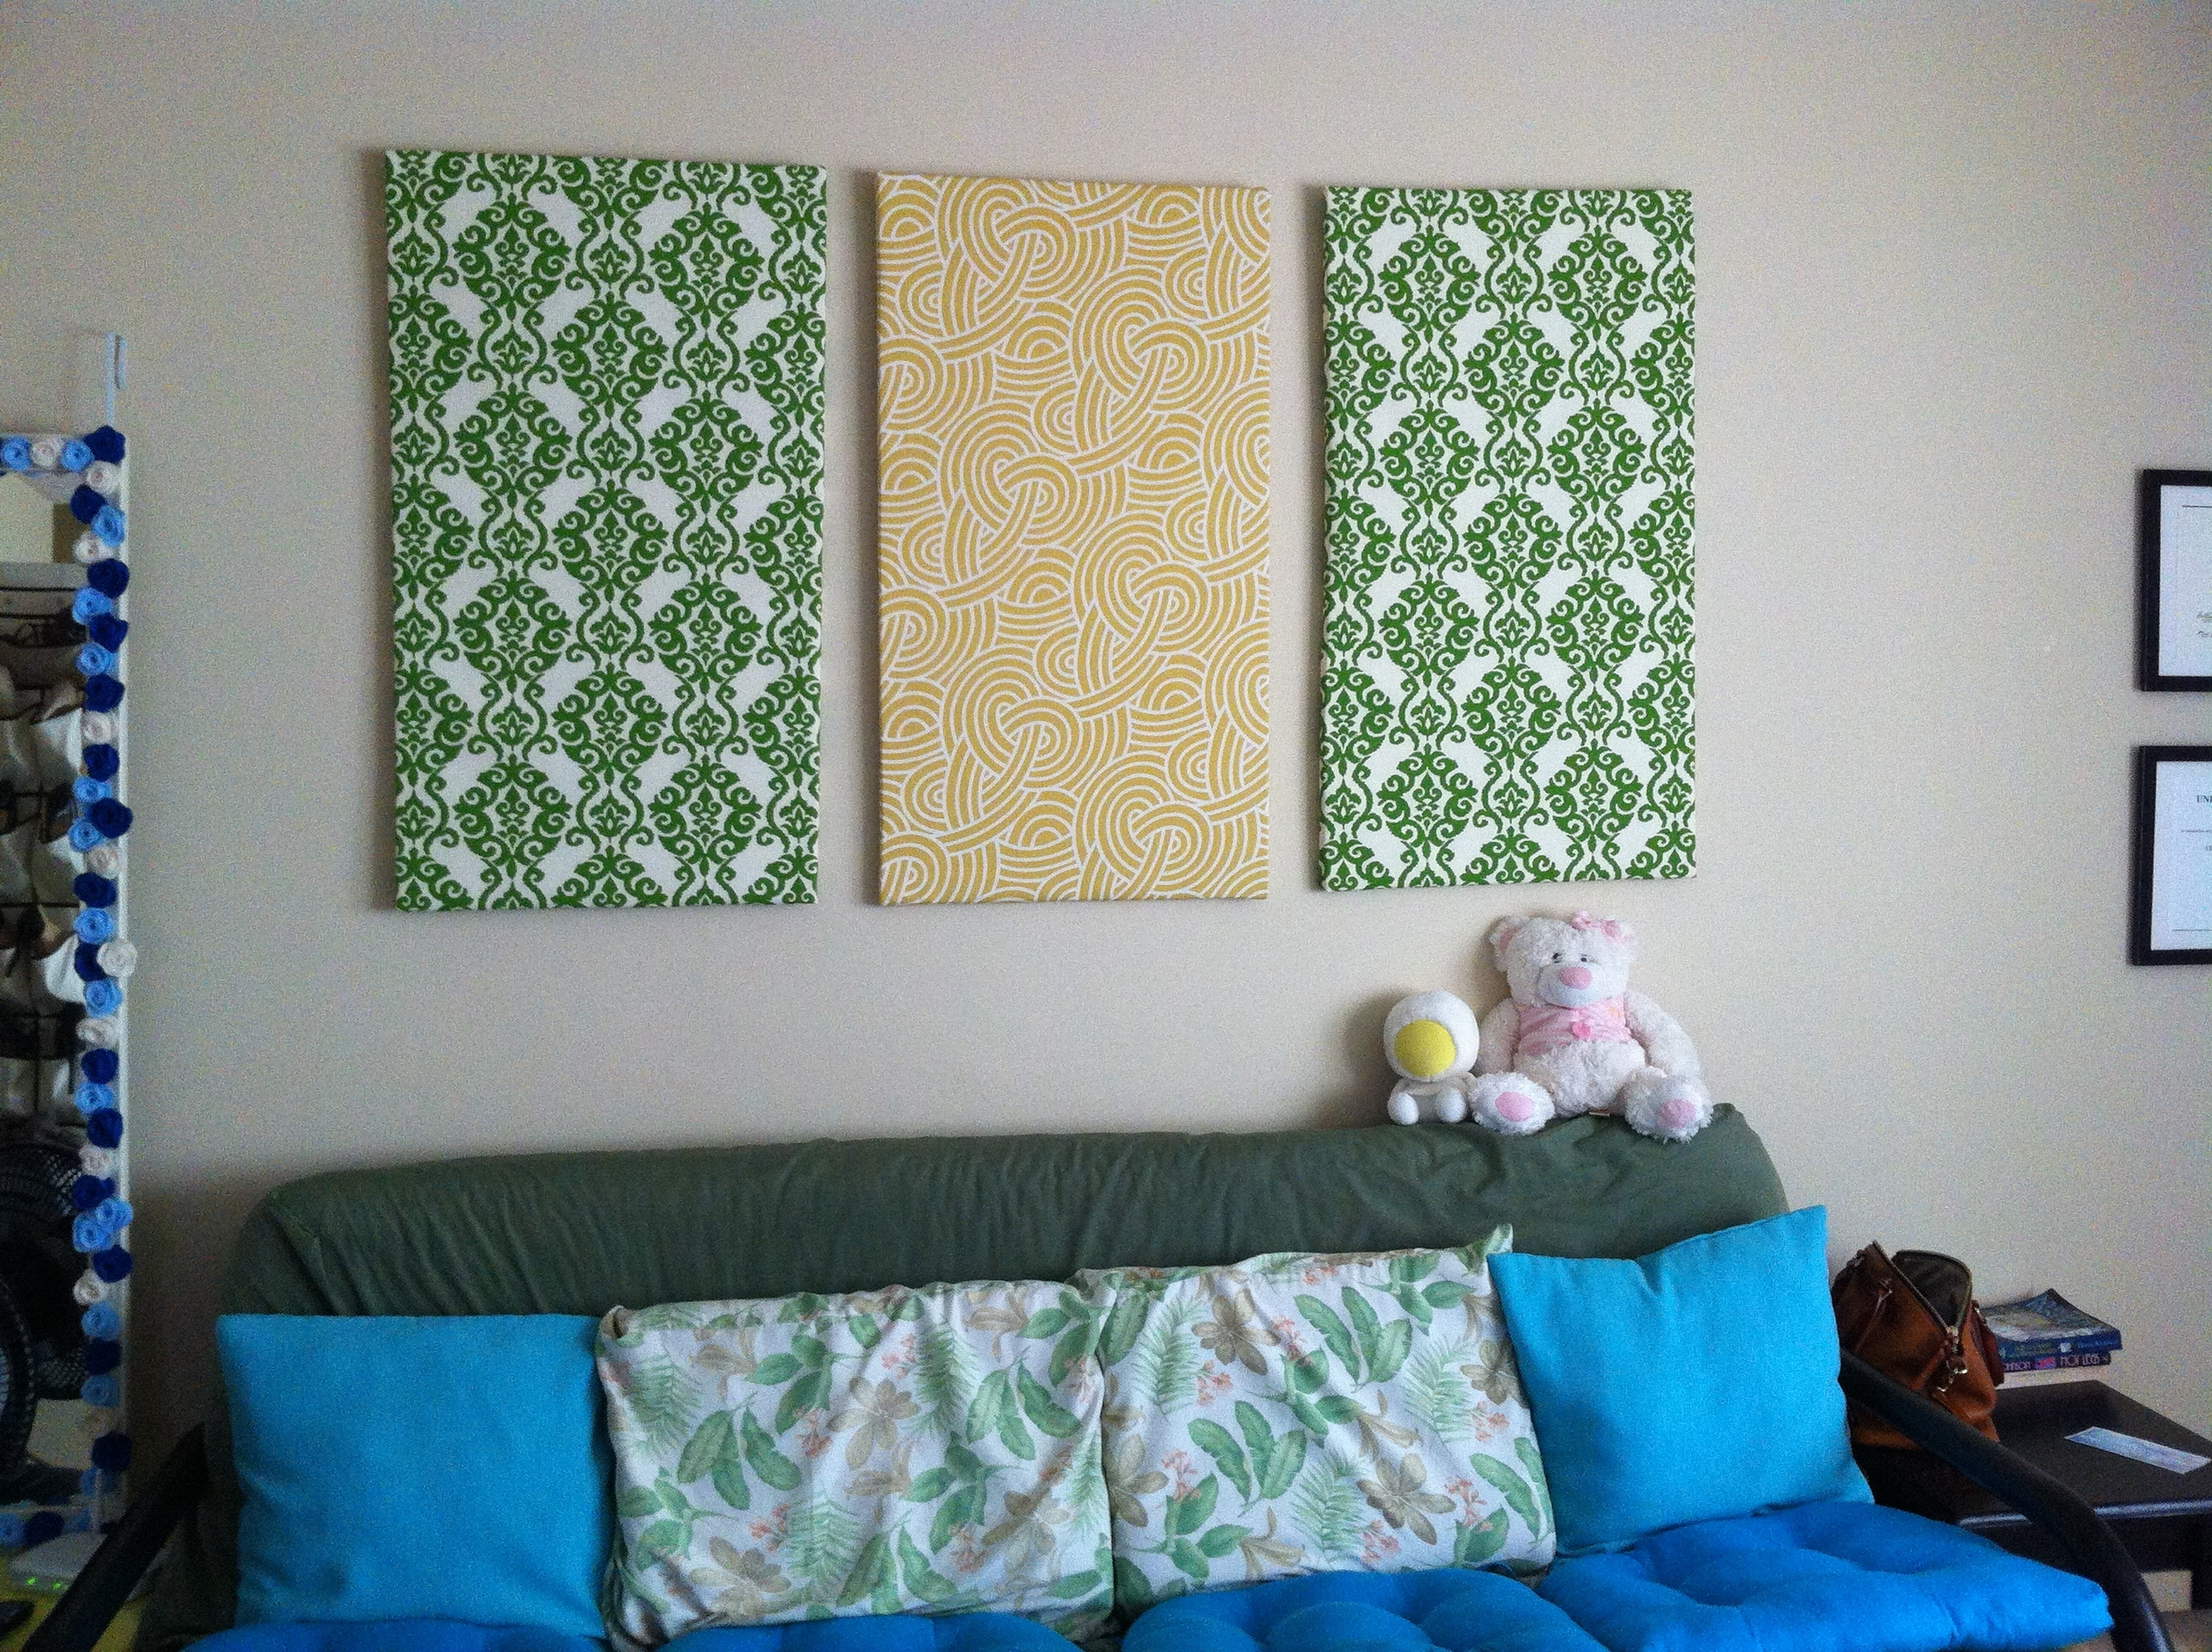 Art: Diy Fabric Wall Art For Most Current Canvas And Fabric Wall Art (View 11 of 15)